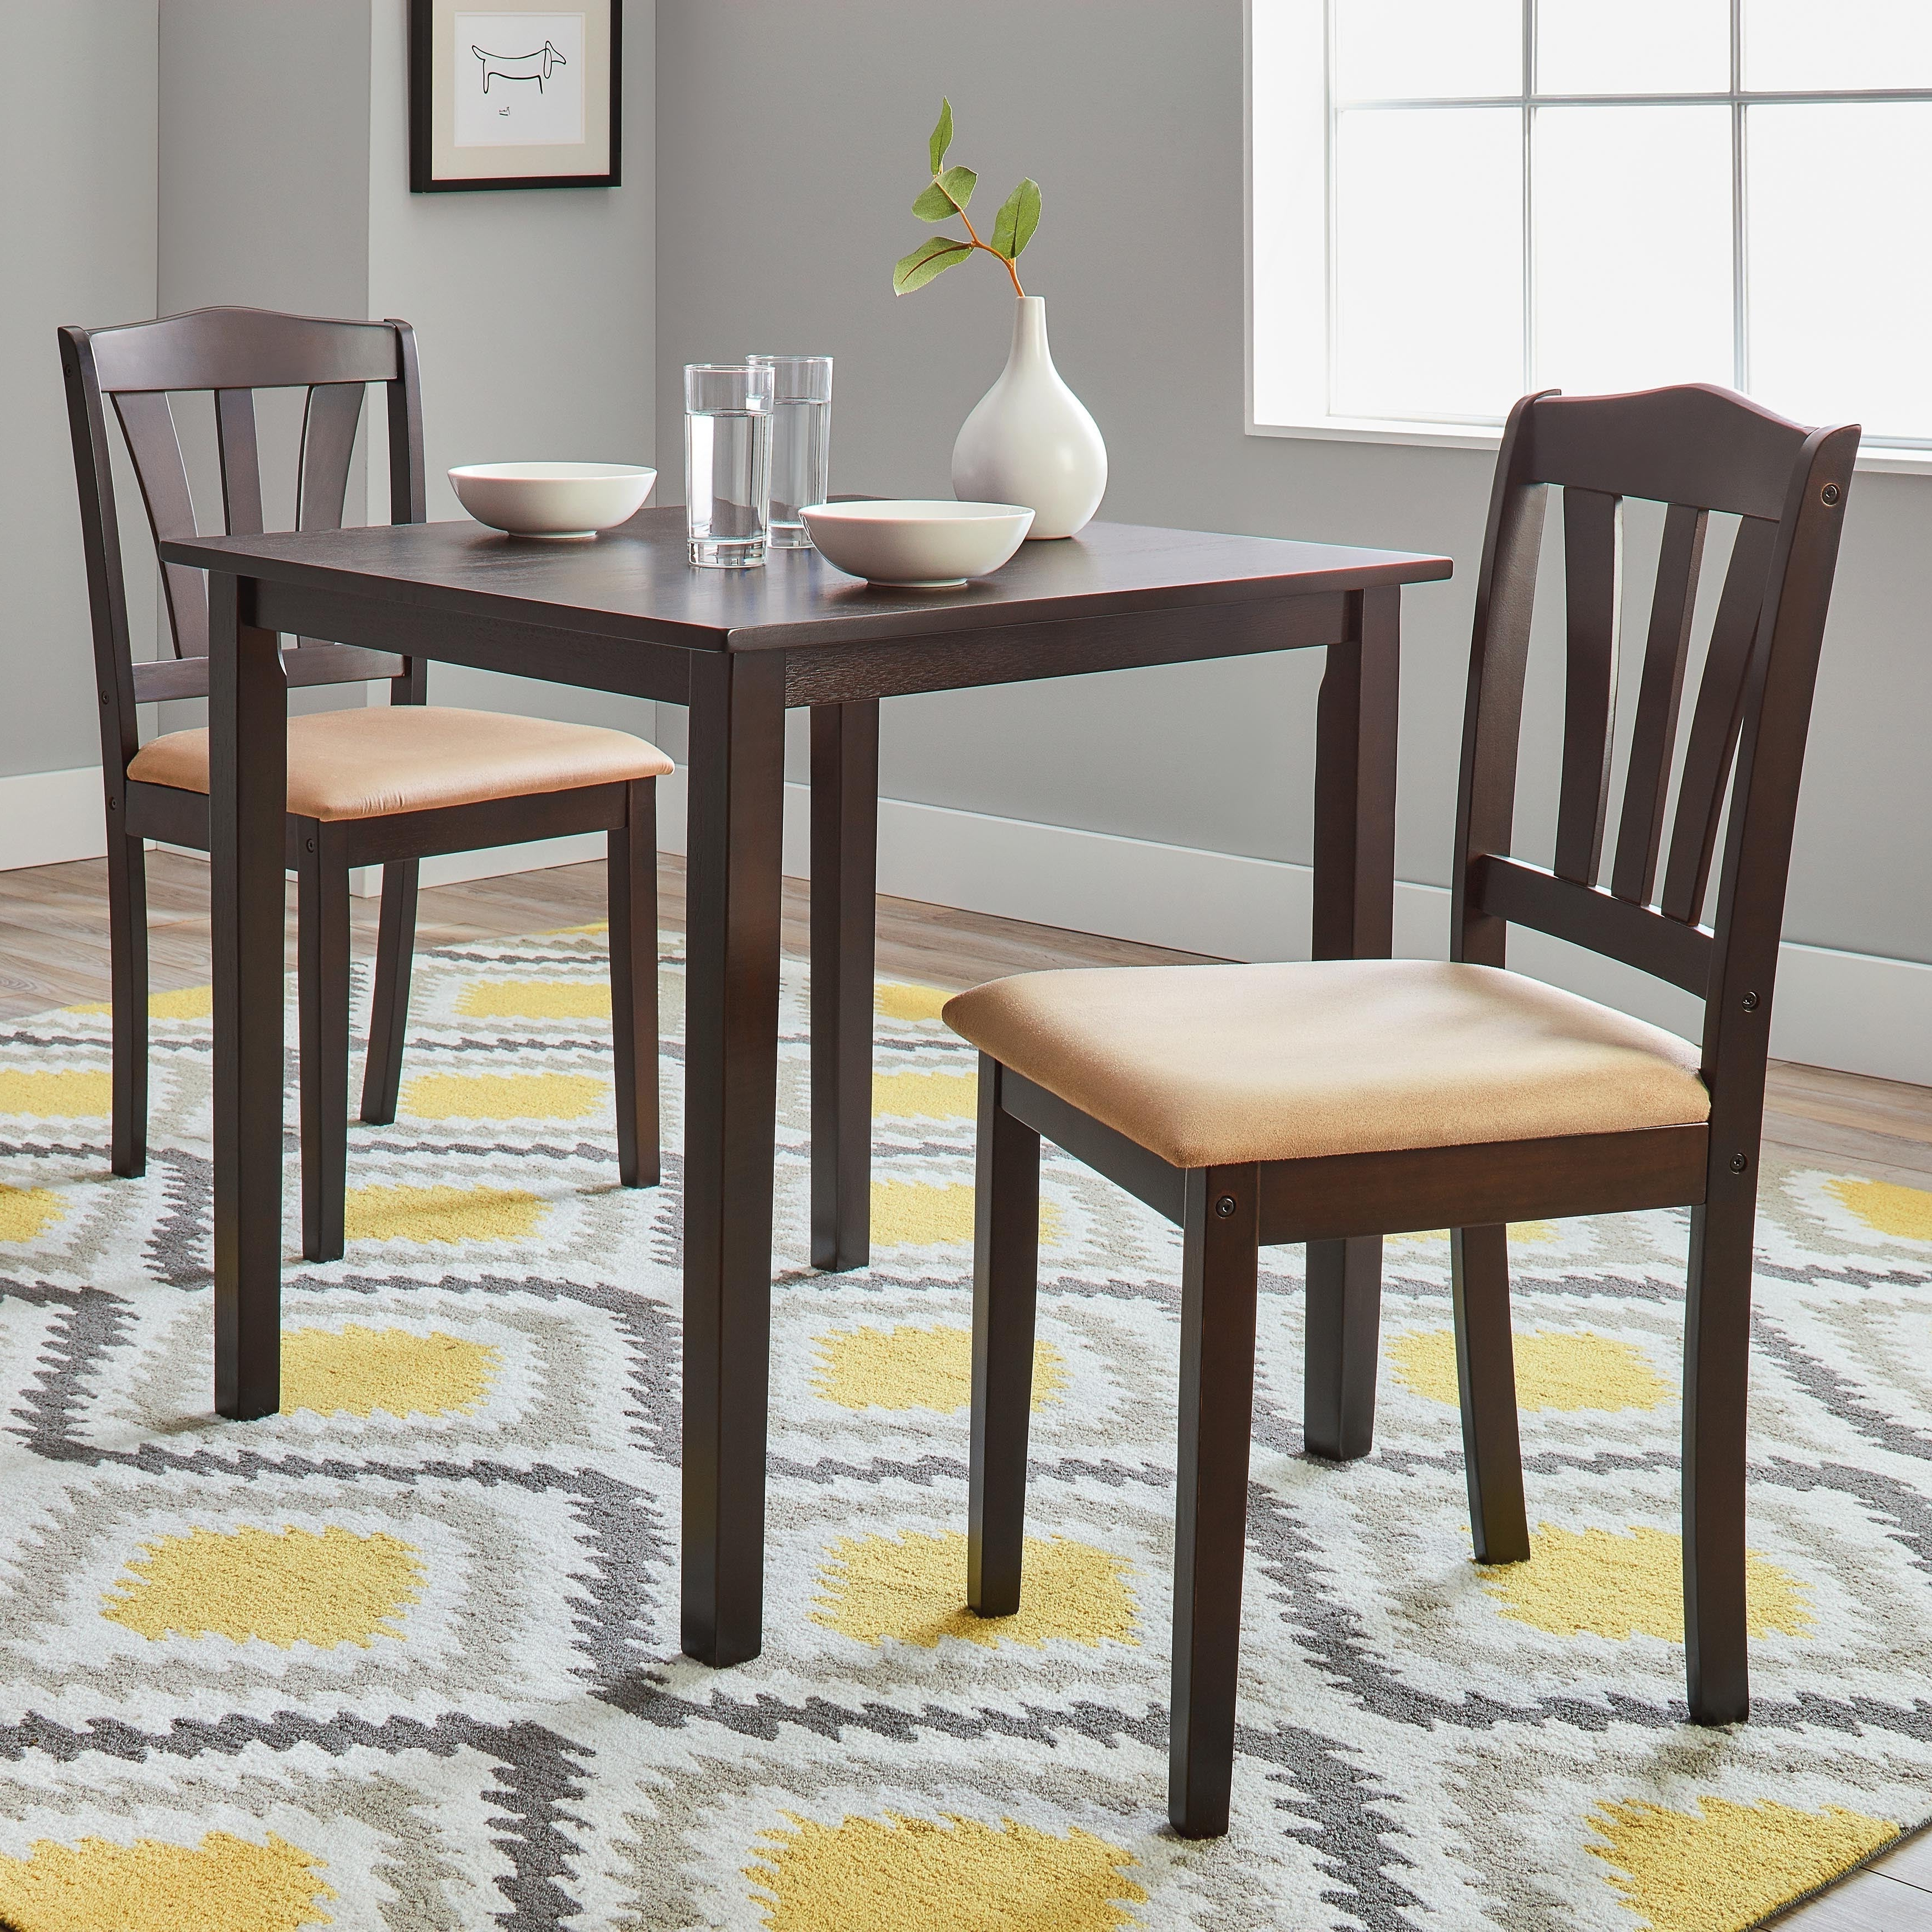 Trendy Rossiter 3 Piece Dining Sets Inside Buy 3 Piece Sets Kitchen & Dining Room Sets Online At Overstock (View 16 of 20)